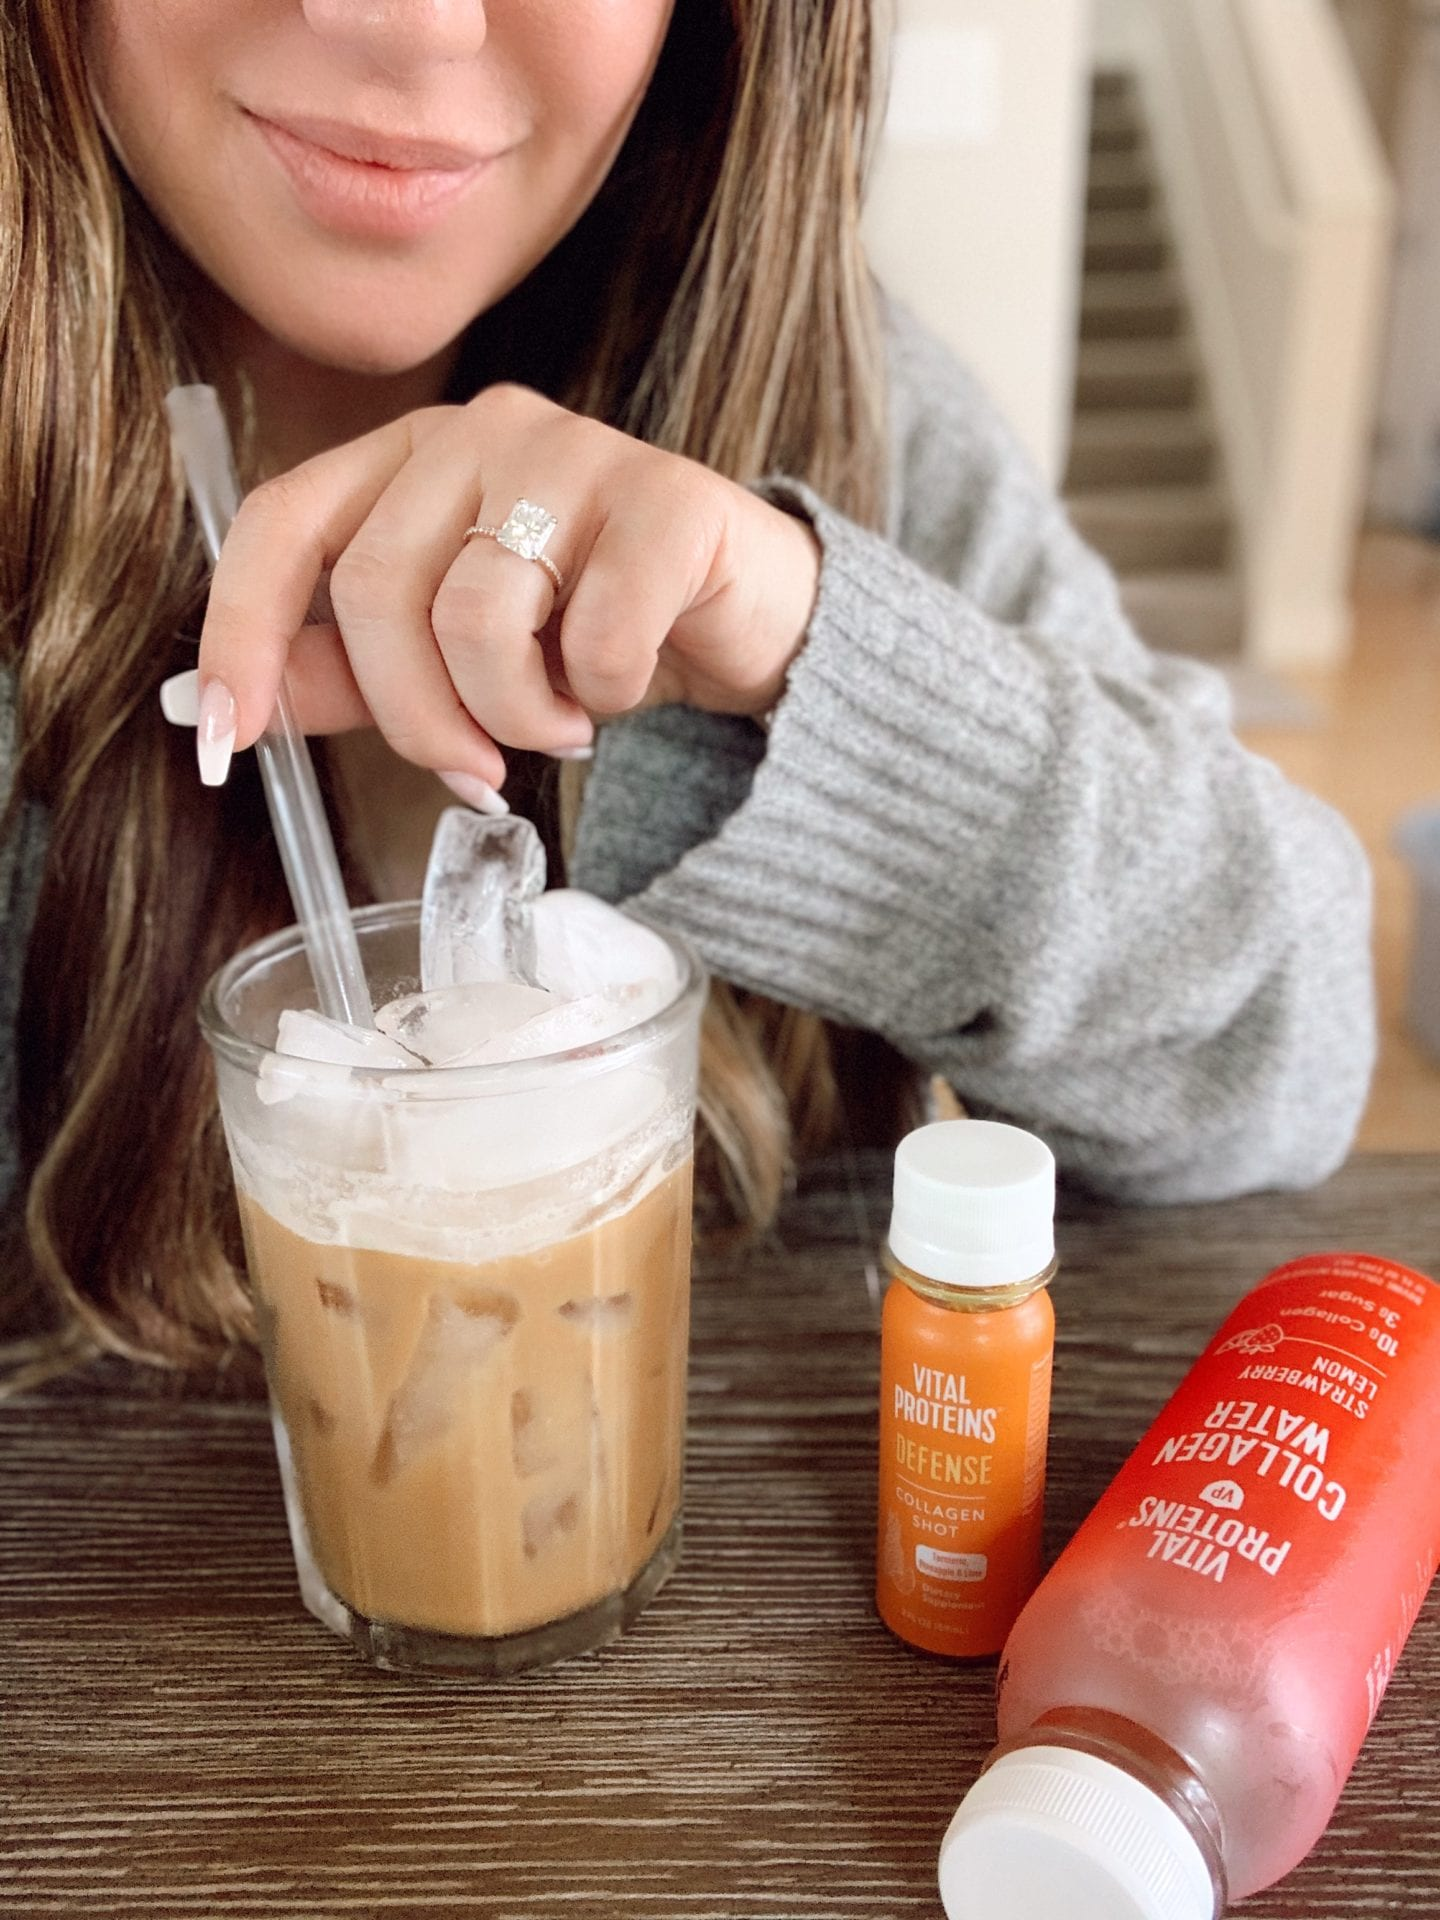 Vital Proteins Collagen Powder | Vital Proteins Collagen Peptides by popular San Francisco beauty blog, Just Add Glam: image of a woman drinking an iced coffee and sitting next to a bottle of Vital Proteins Defense and Vital Proteins Collagen Water.